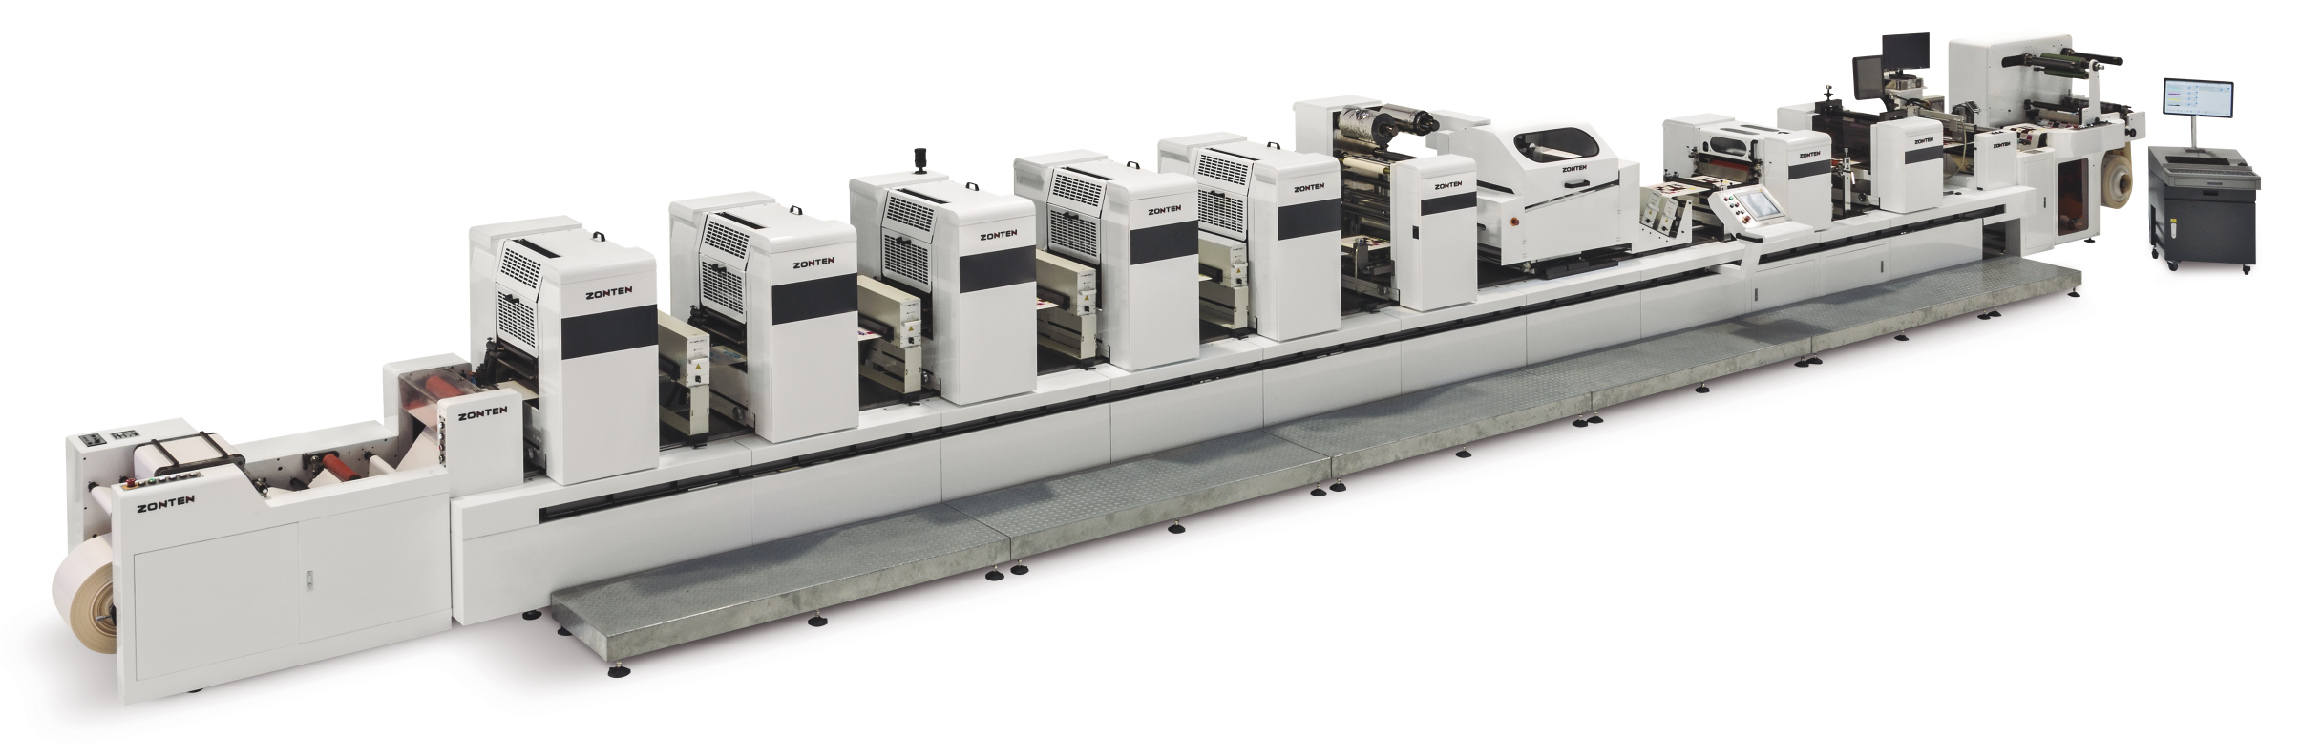 MULTIPRINT ZTJ-330_520 Zonten Europe en LabelExpo